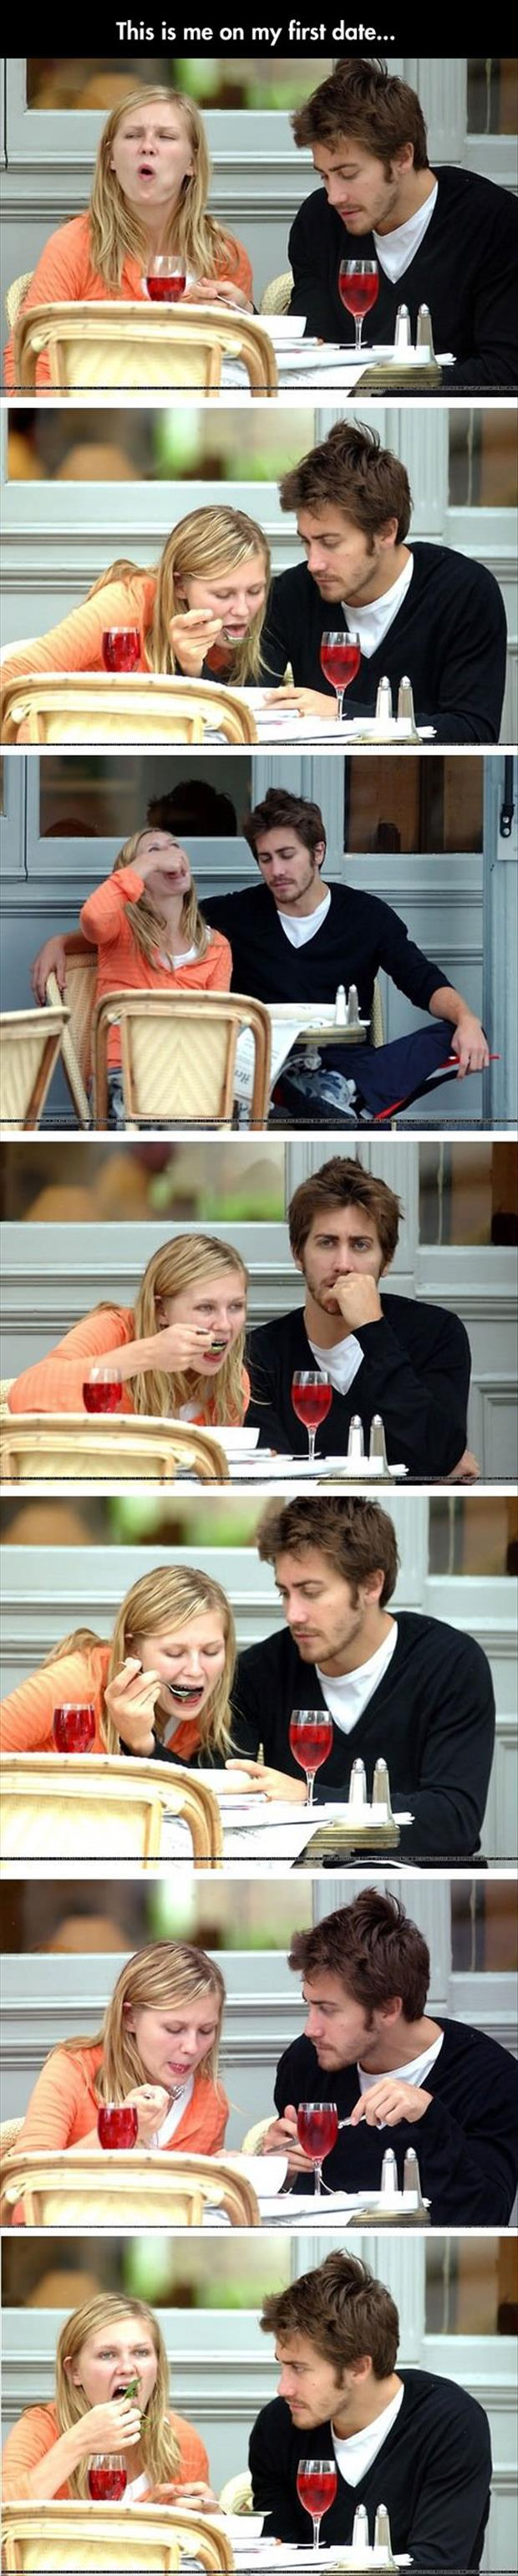 this is me on a first date